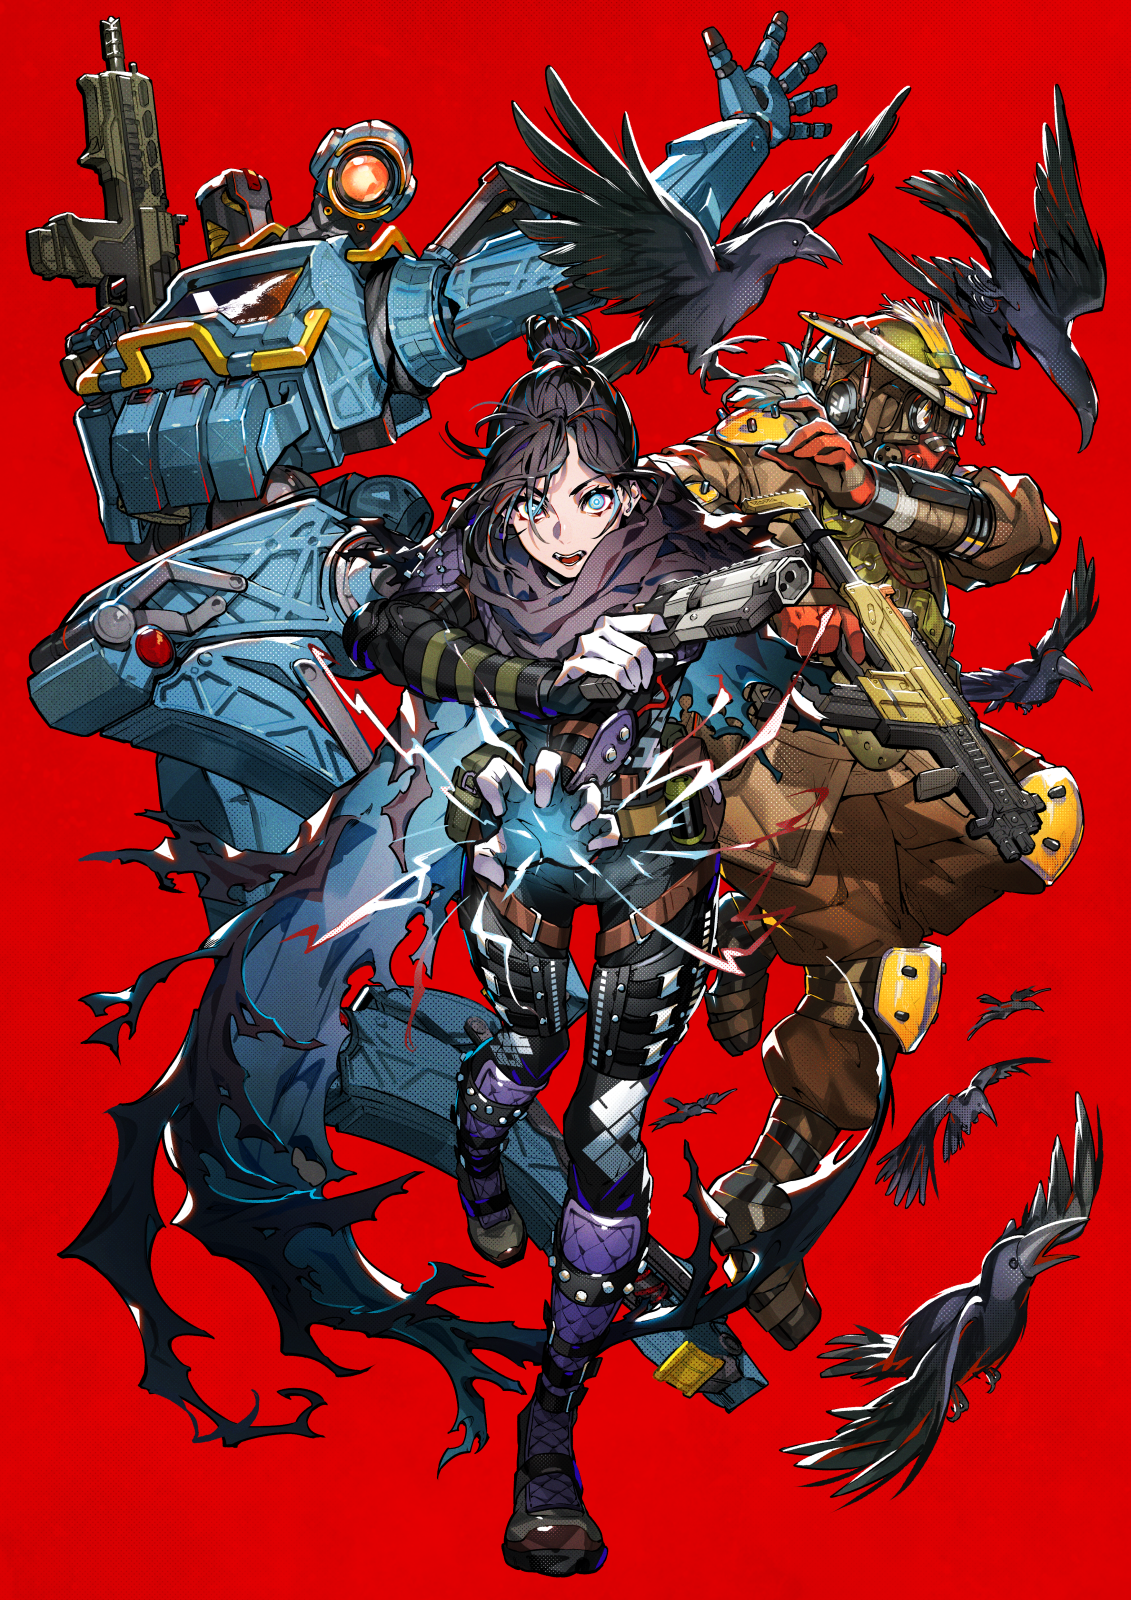 Video Game Art Simple Background Red Background Apex Legends Mika Pikazo Vertical Frontal View Raven 1131x1600